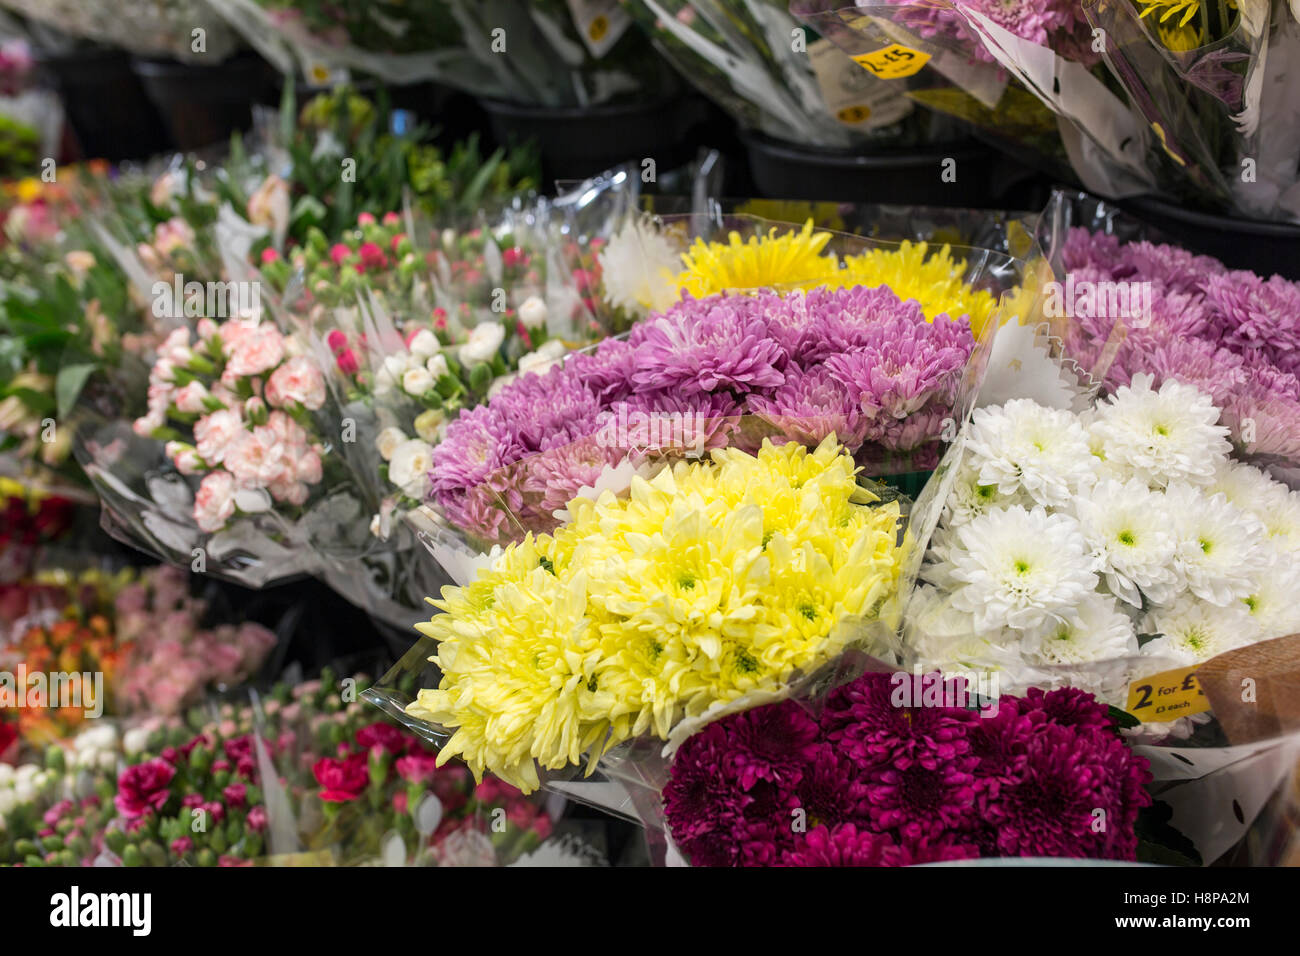 Bunches Of Flowers Uk Stock Photos Bunches Of Flowers Uk Stock